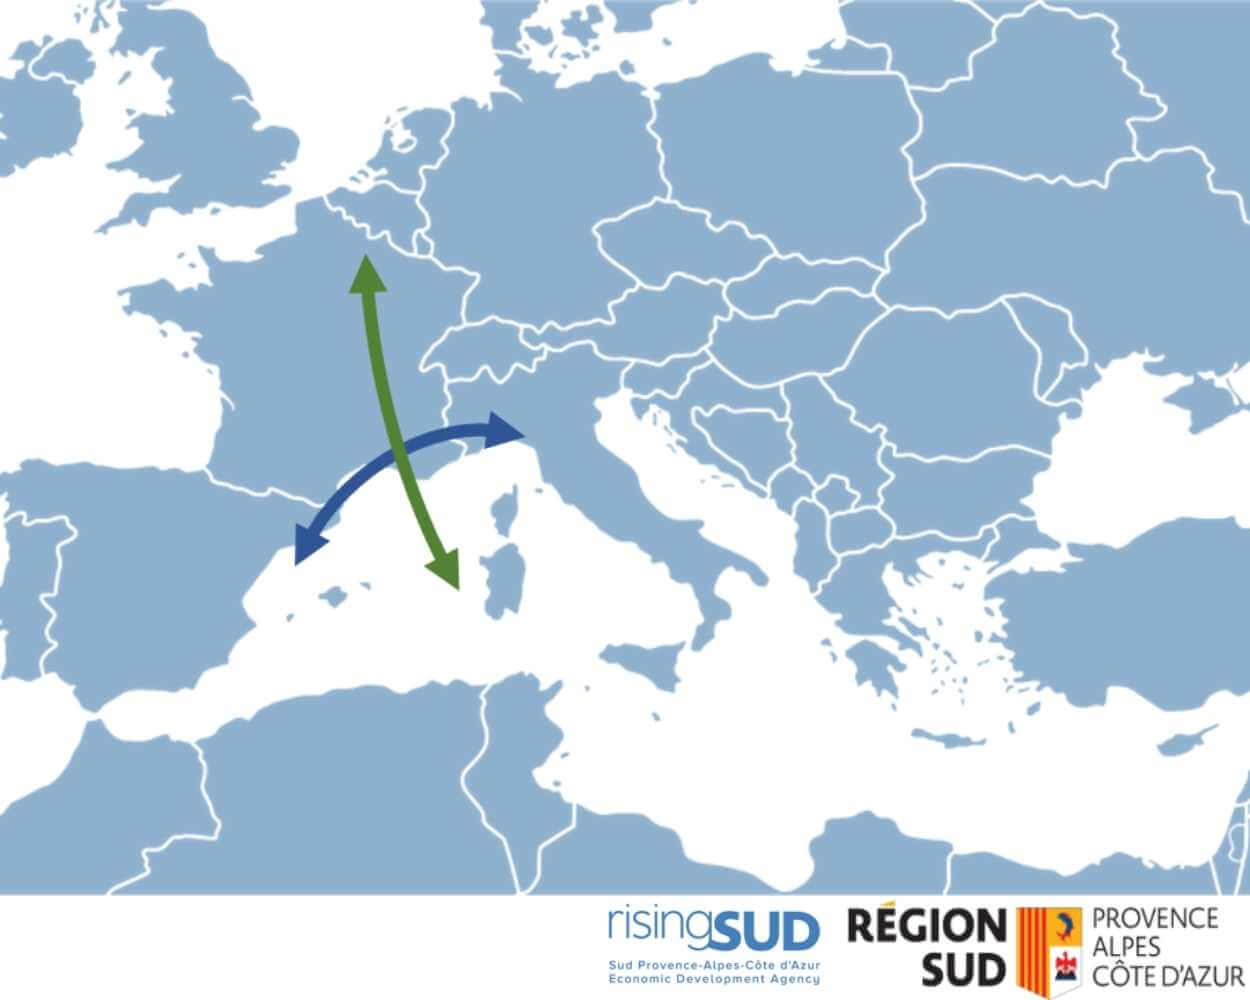 The southern region of France a continental platform for hydrogen